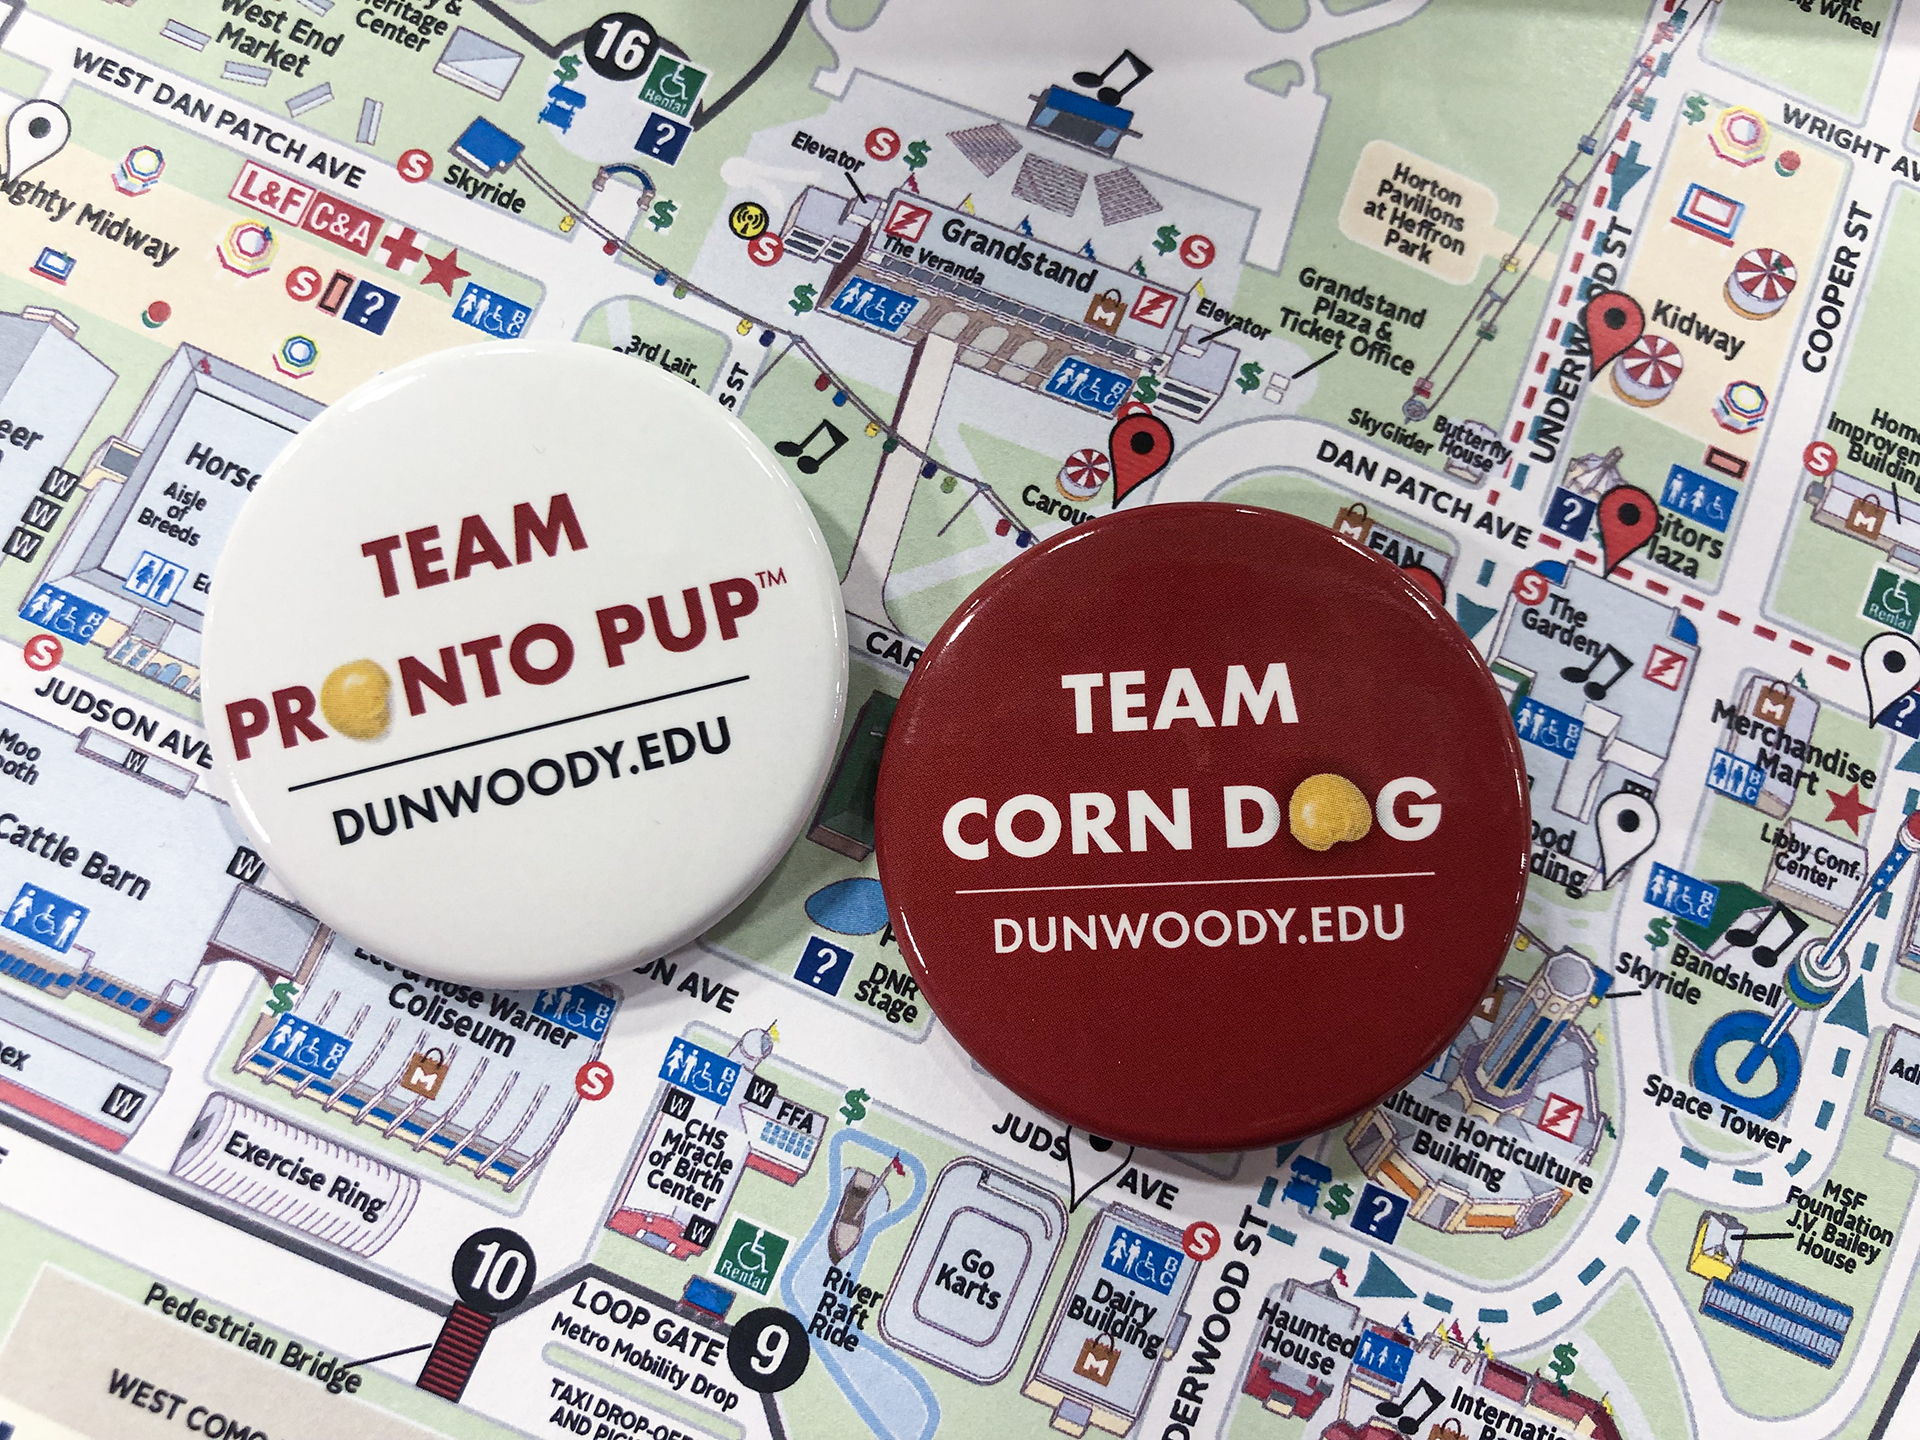 Vote for Pronto Pup or Corn Dog at the Minnesota State Fair